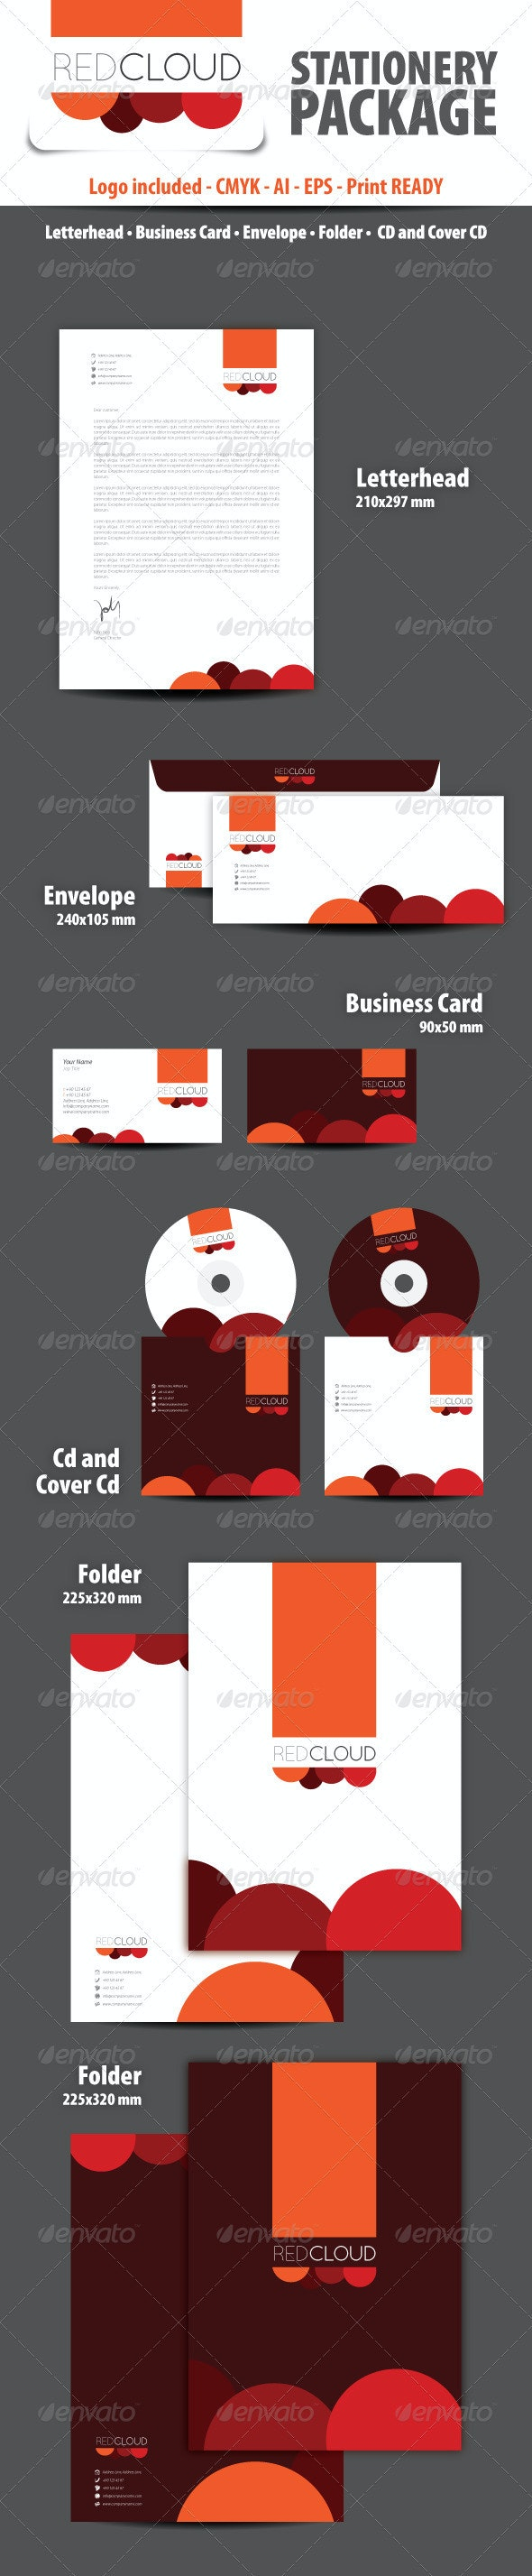 Red Cloud Stationery Package - Stationery Print Templates